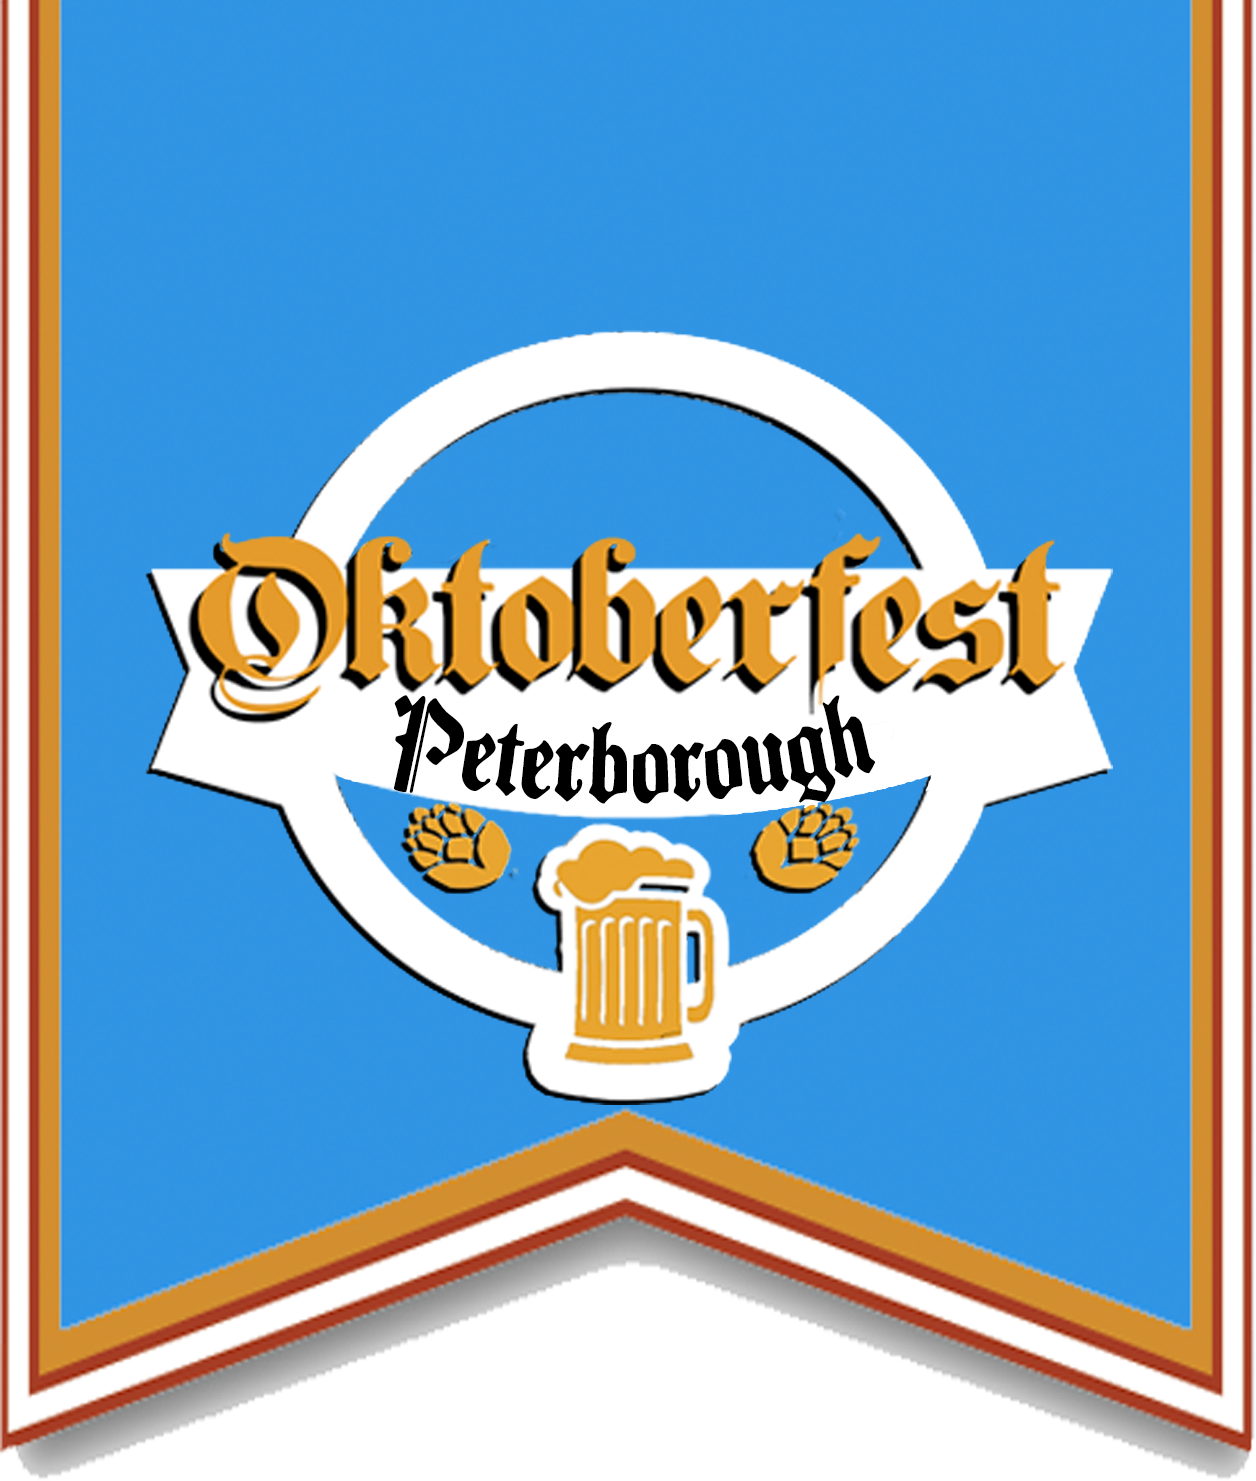 Oktoberfest Peterborough